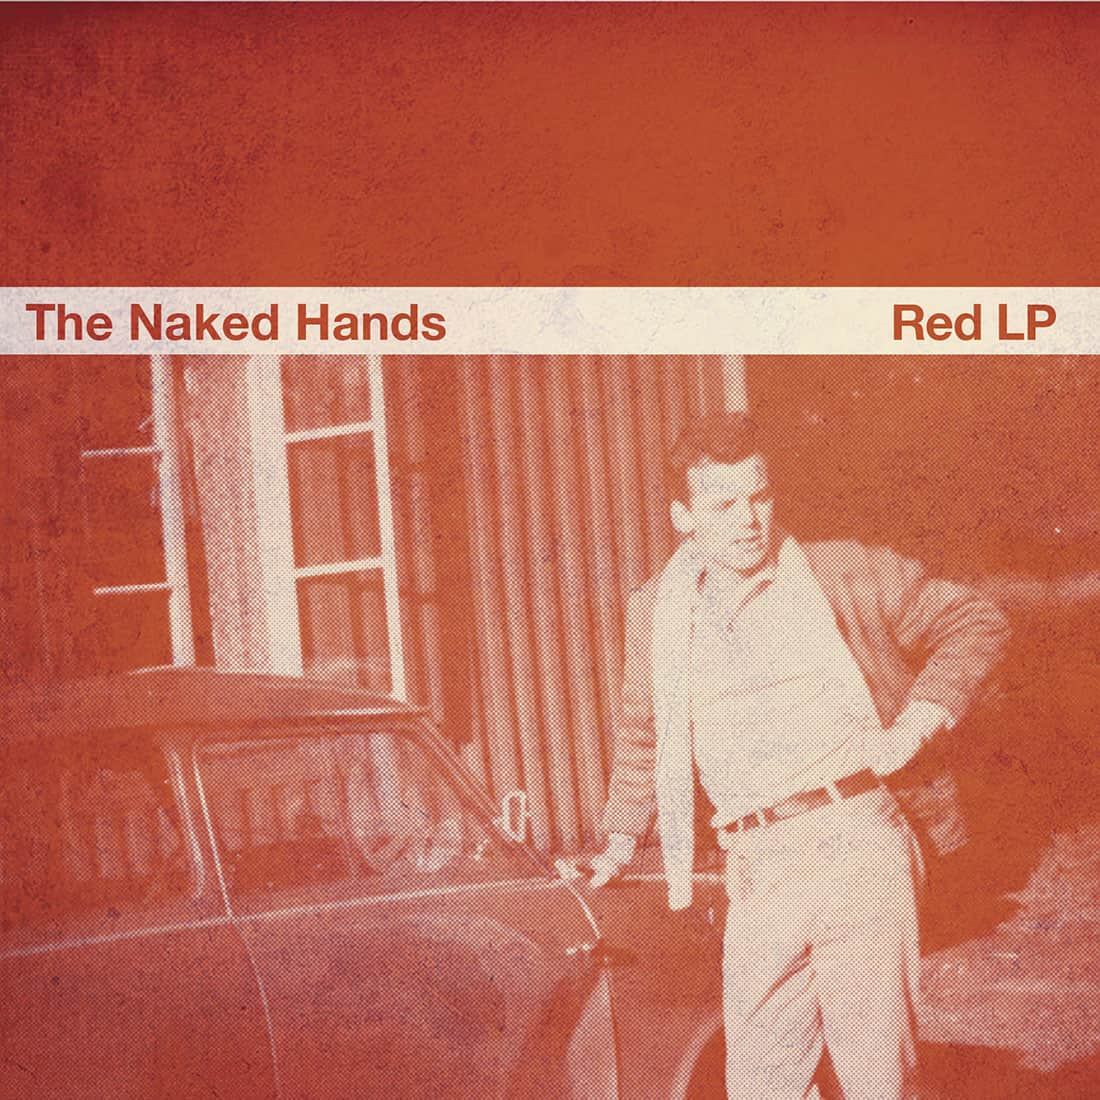 The Naked Hands | recordJet